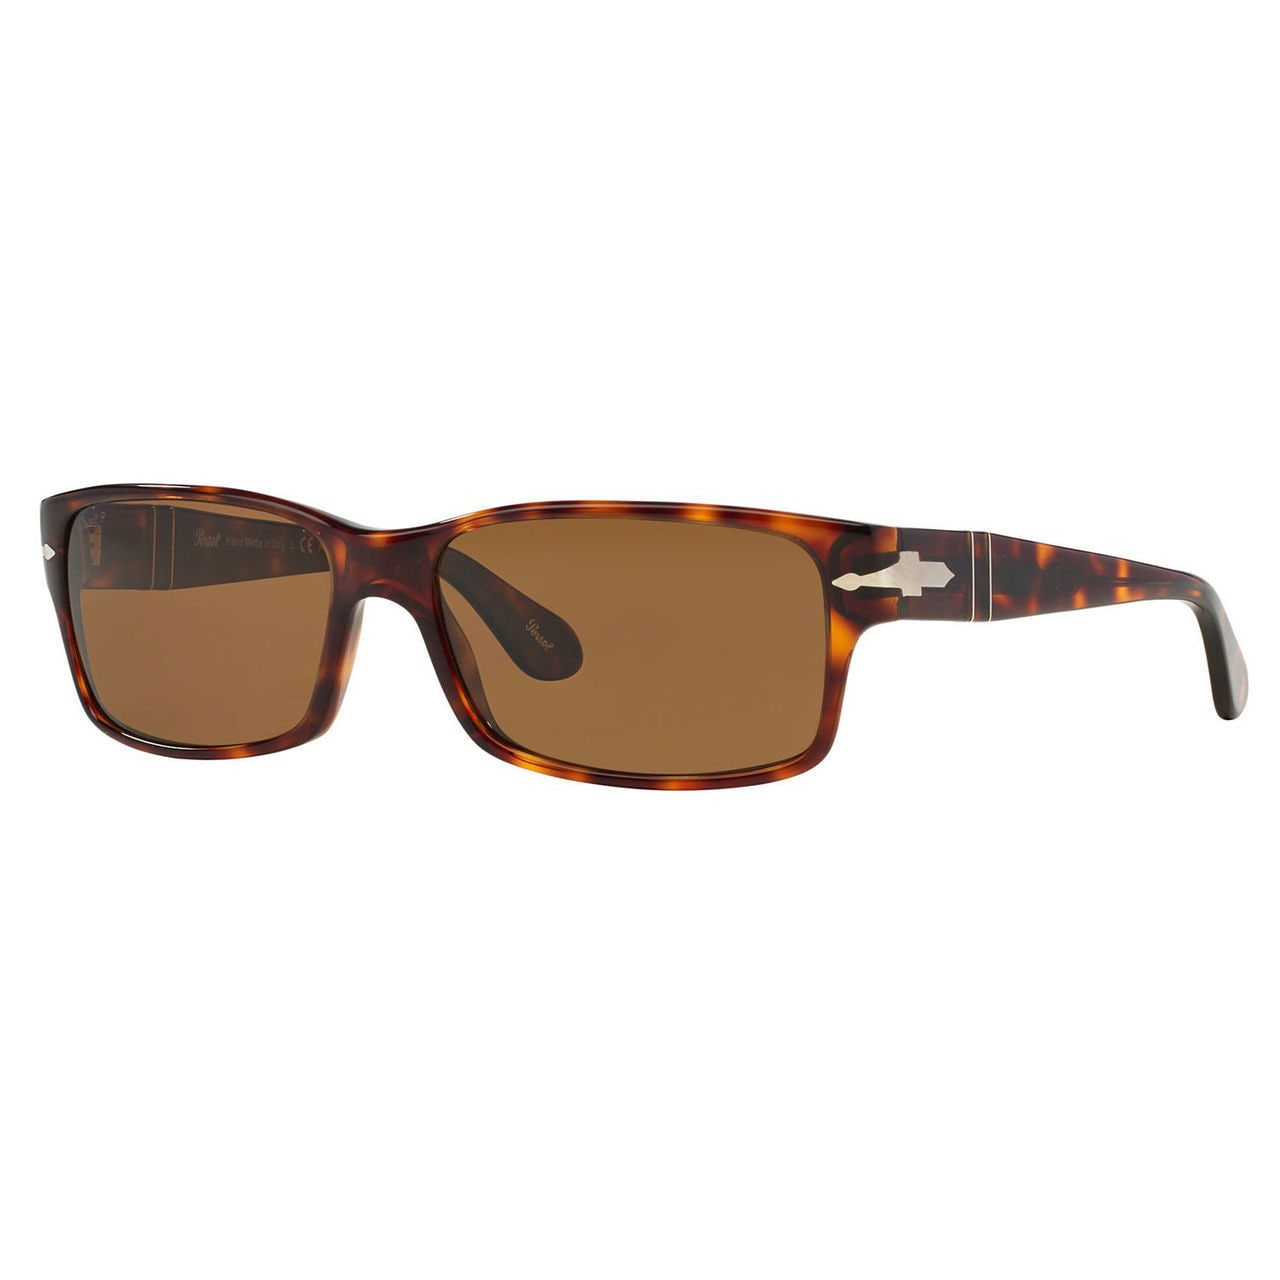 a2ee9f7394e Persol Men s PO2803S Plastic Rectangle Polarized Sunglasses - Tortoise -  Large